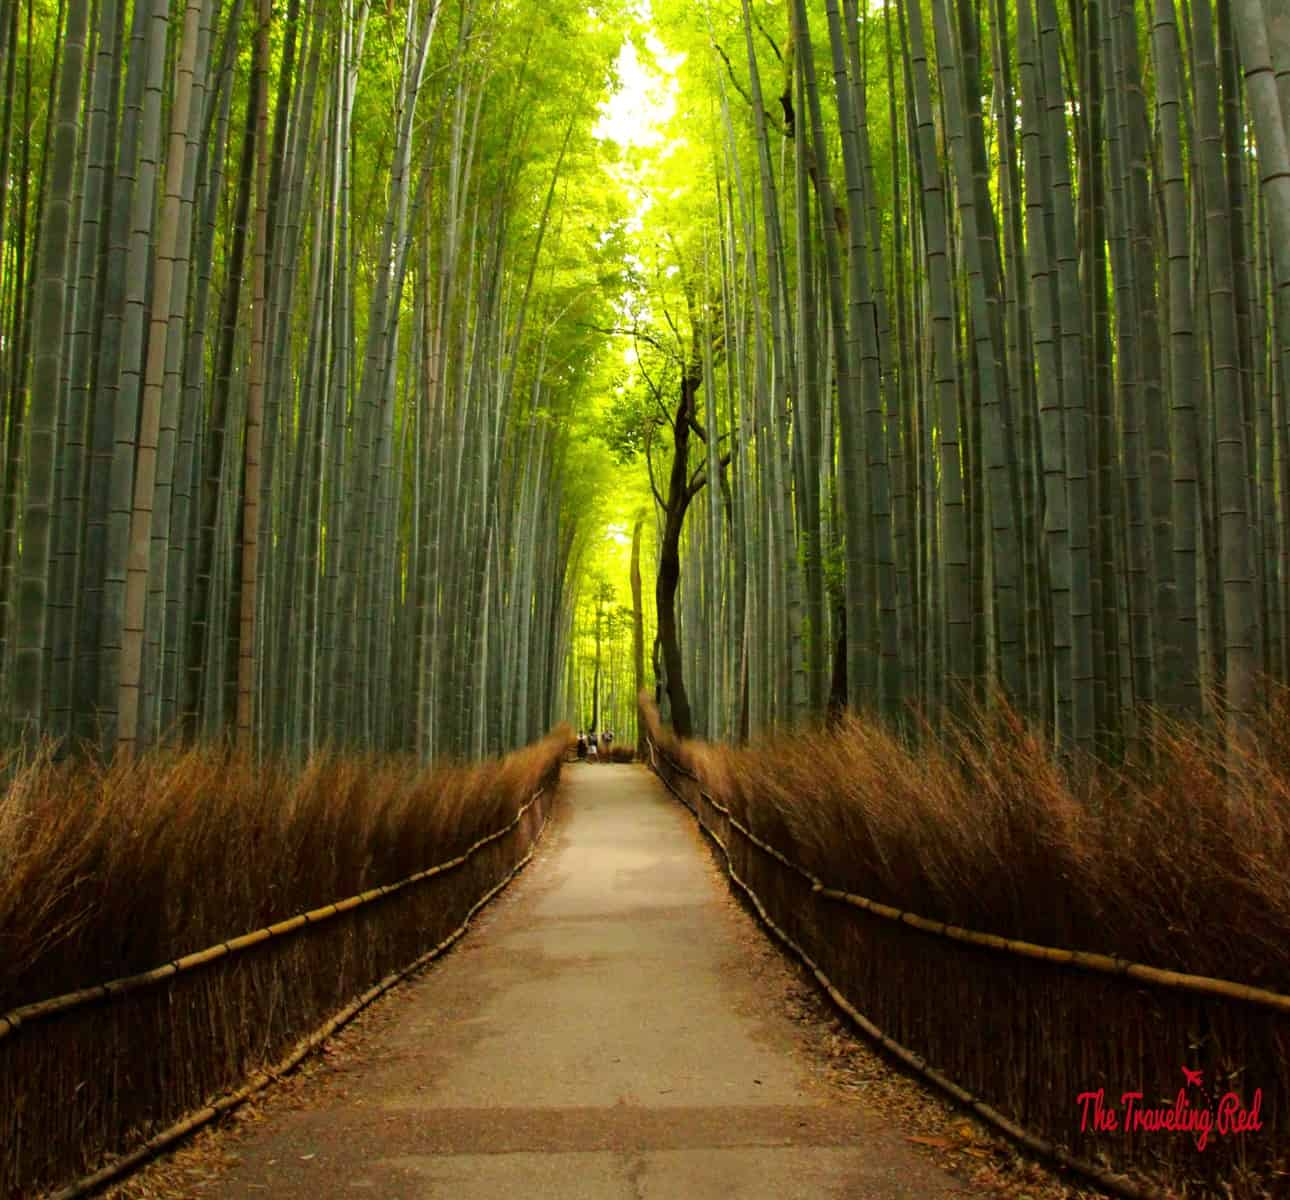 You must see Arashiyama Bamboo Grove when you visit Japan. Make sure to go early to avoid the crowds. The bamboo forest was incredible. They say that those trees can grow up to 3 feet per day!